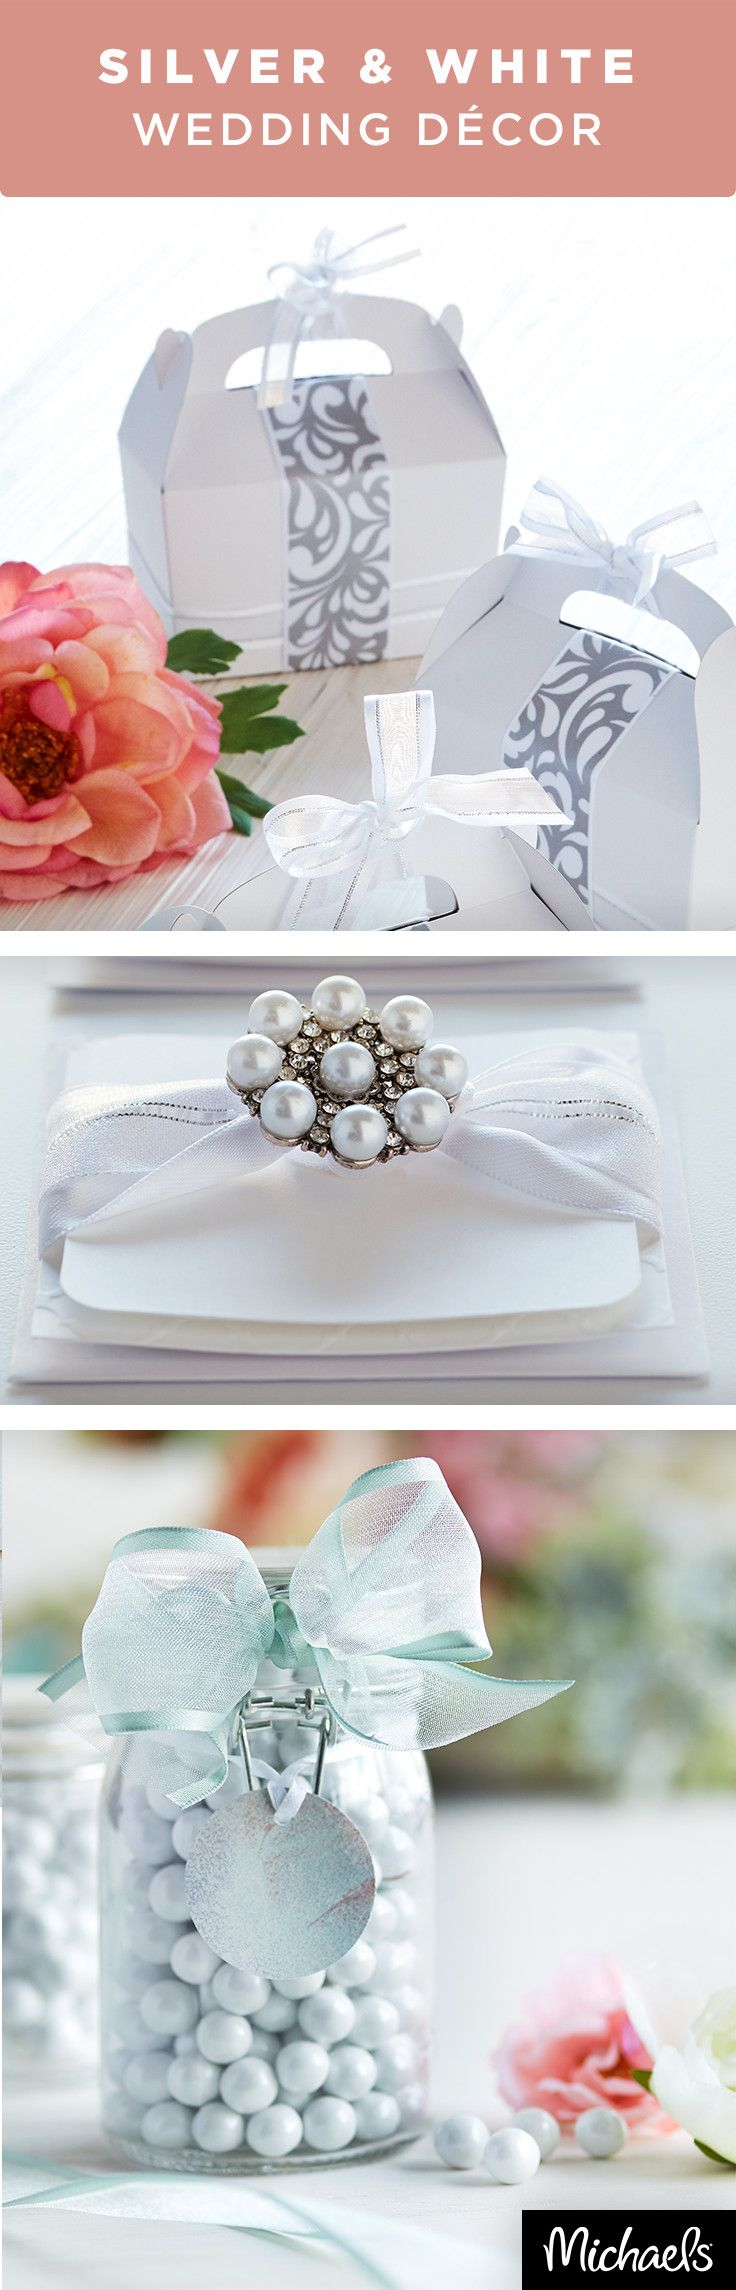 happily ever after wedding invitations%0A DIY your happily ever after with handmade wedding details in silver and  white  From favor